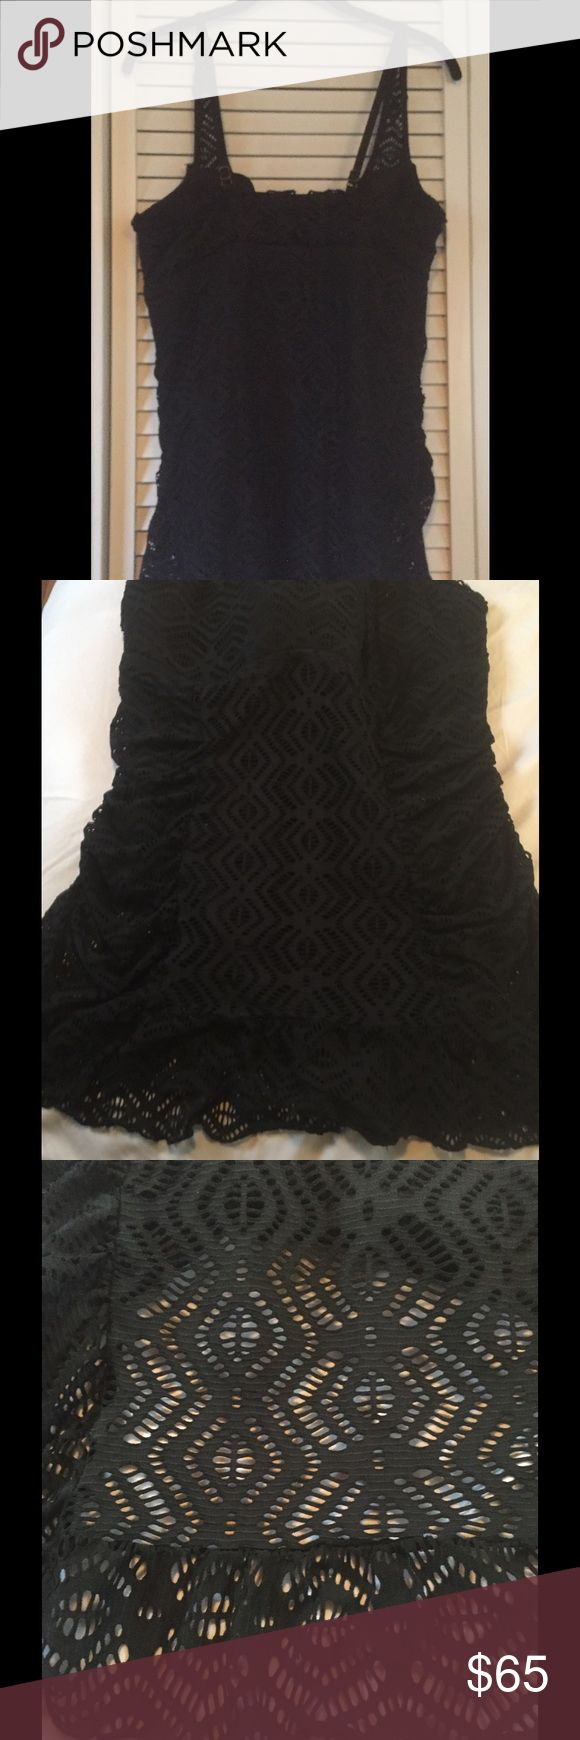 Becca 2XL Double Layer 1 Piece Swimsuit w/ Ruffle NWOT Becca 2XL Black One Piece Swimsuit with lace Ruffle over layer.  Super flattering BECCA Swim One Pieces